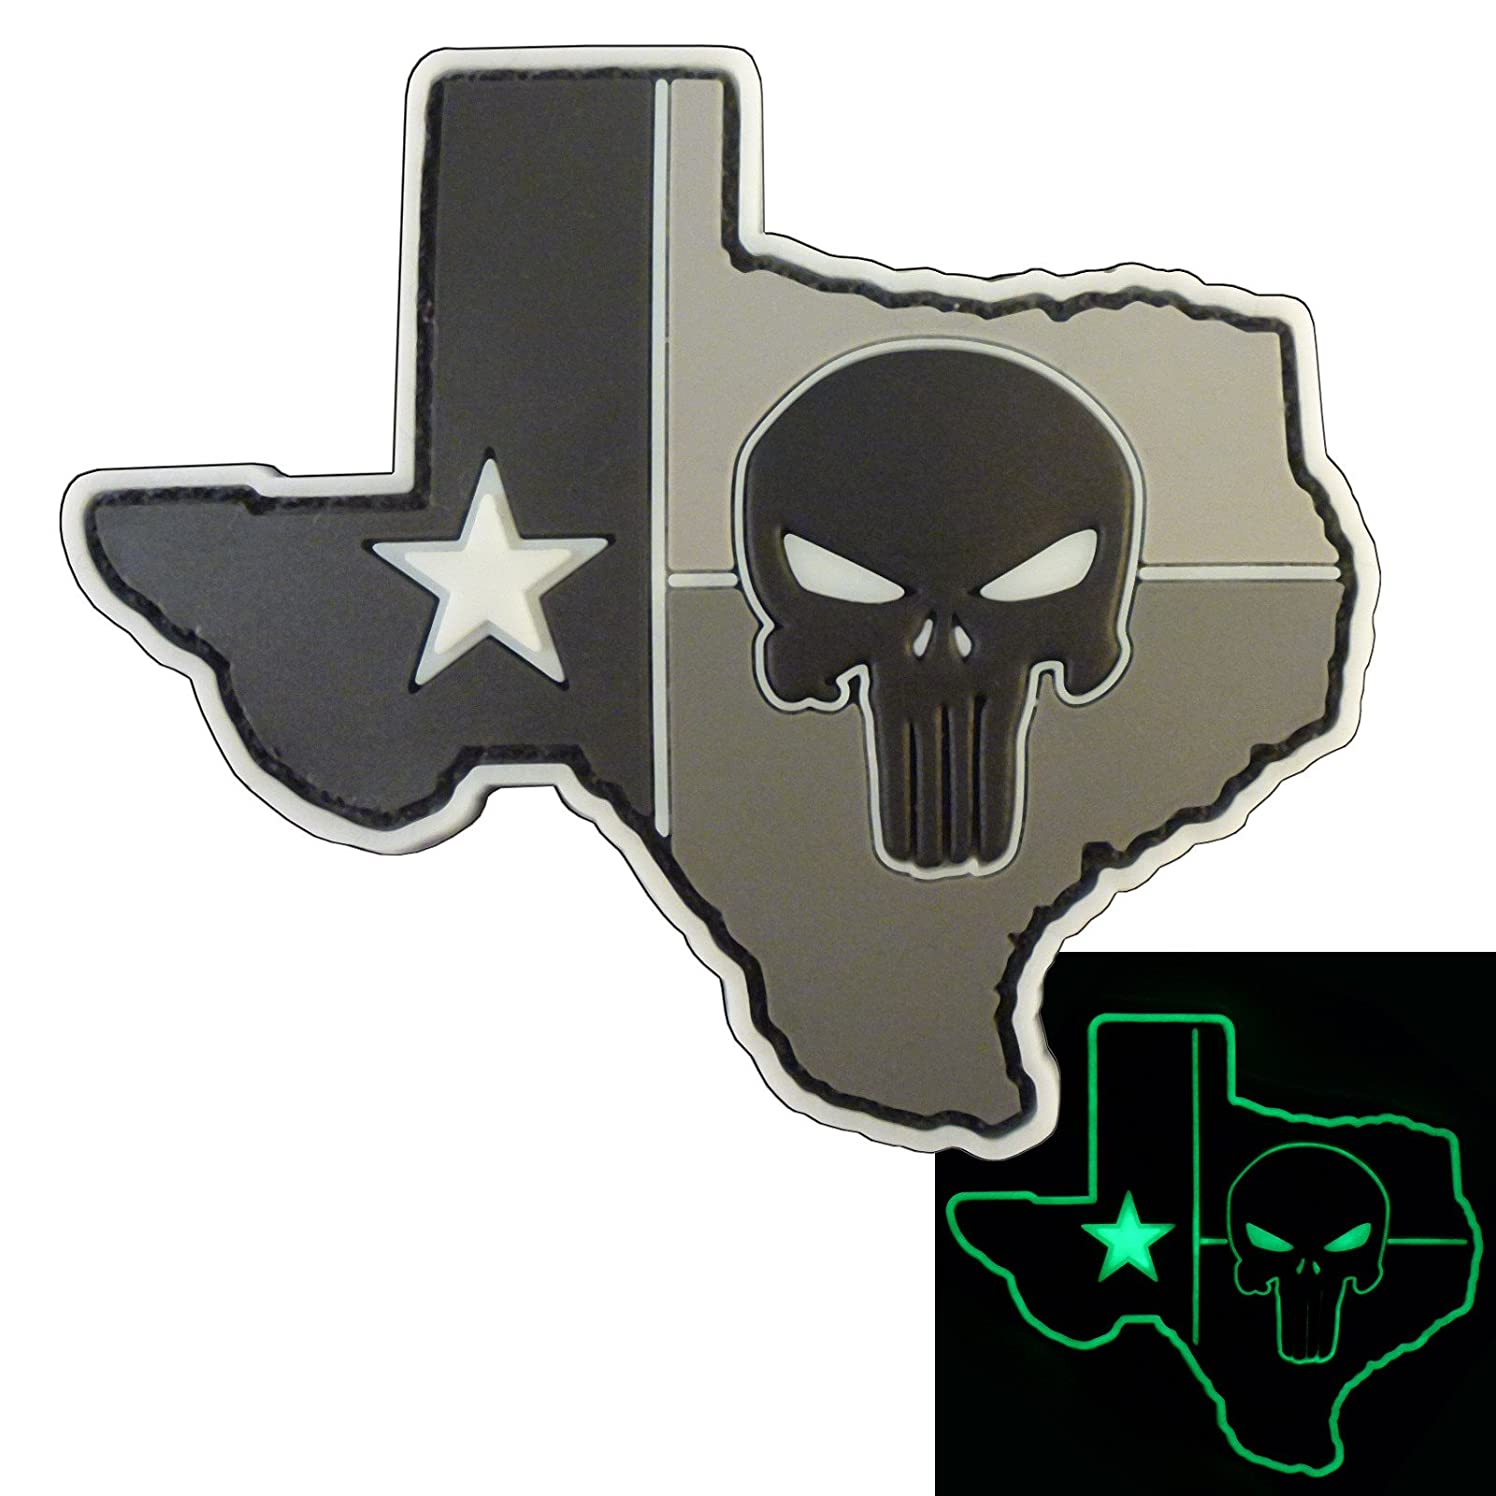 LEGEEON Glow Dark ACU Punisher Texas Lone Star DEVGRU PVC Rubber Morale Hook&Loop Patch